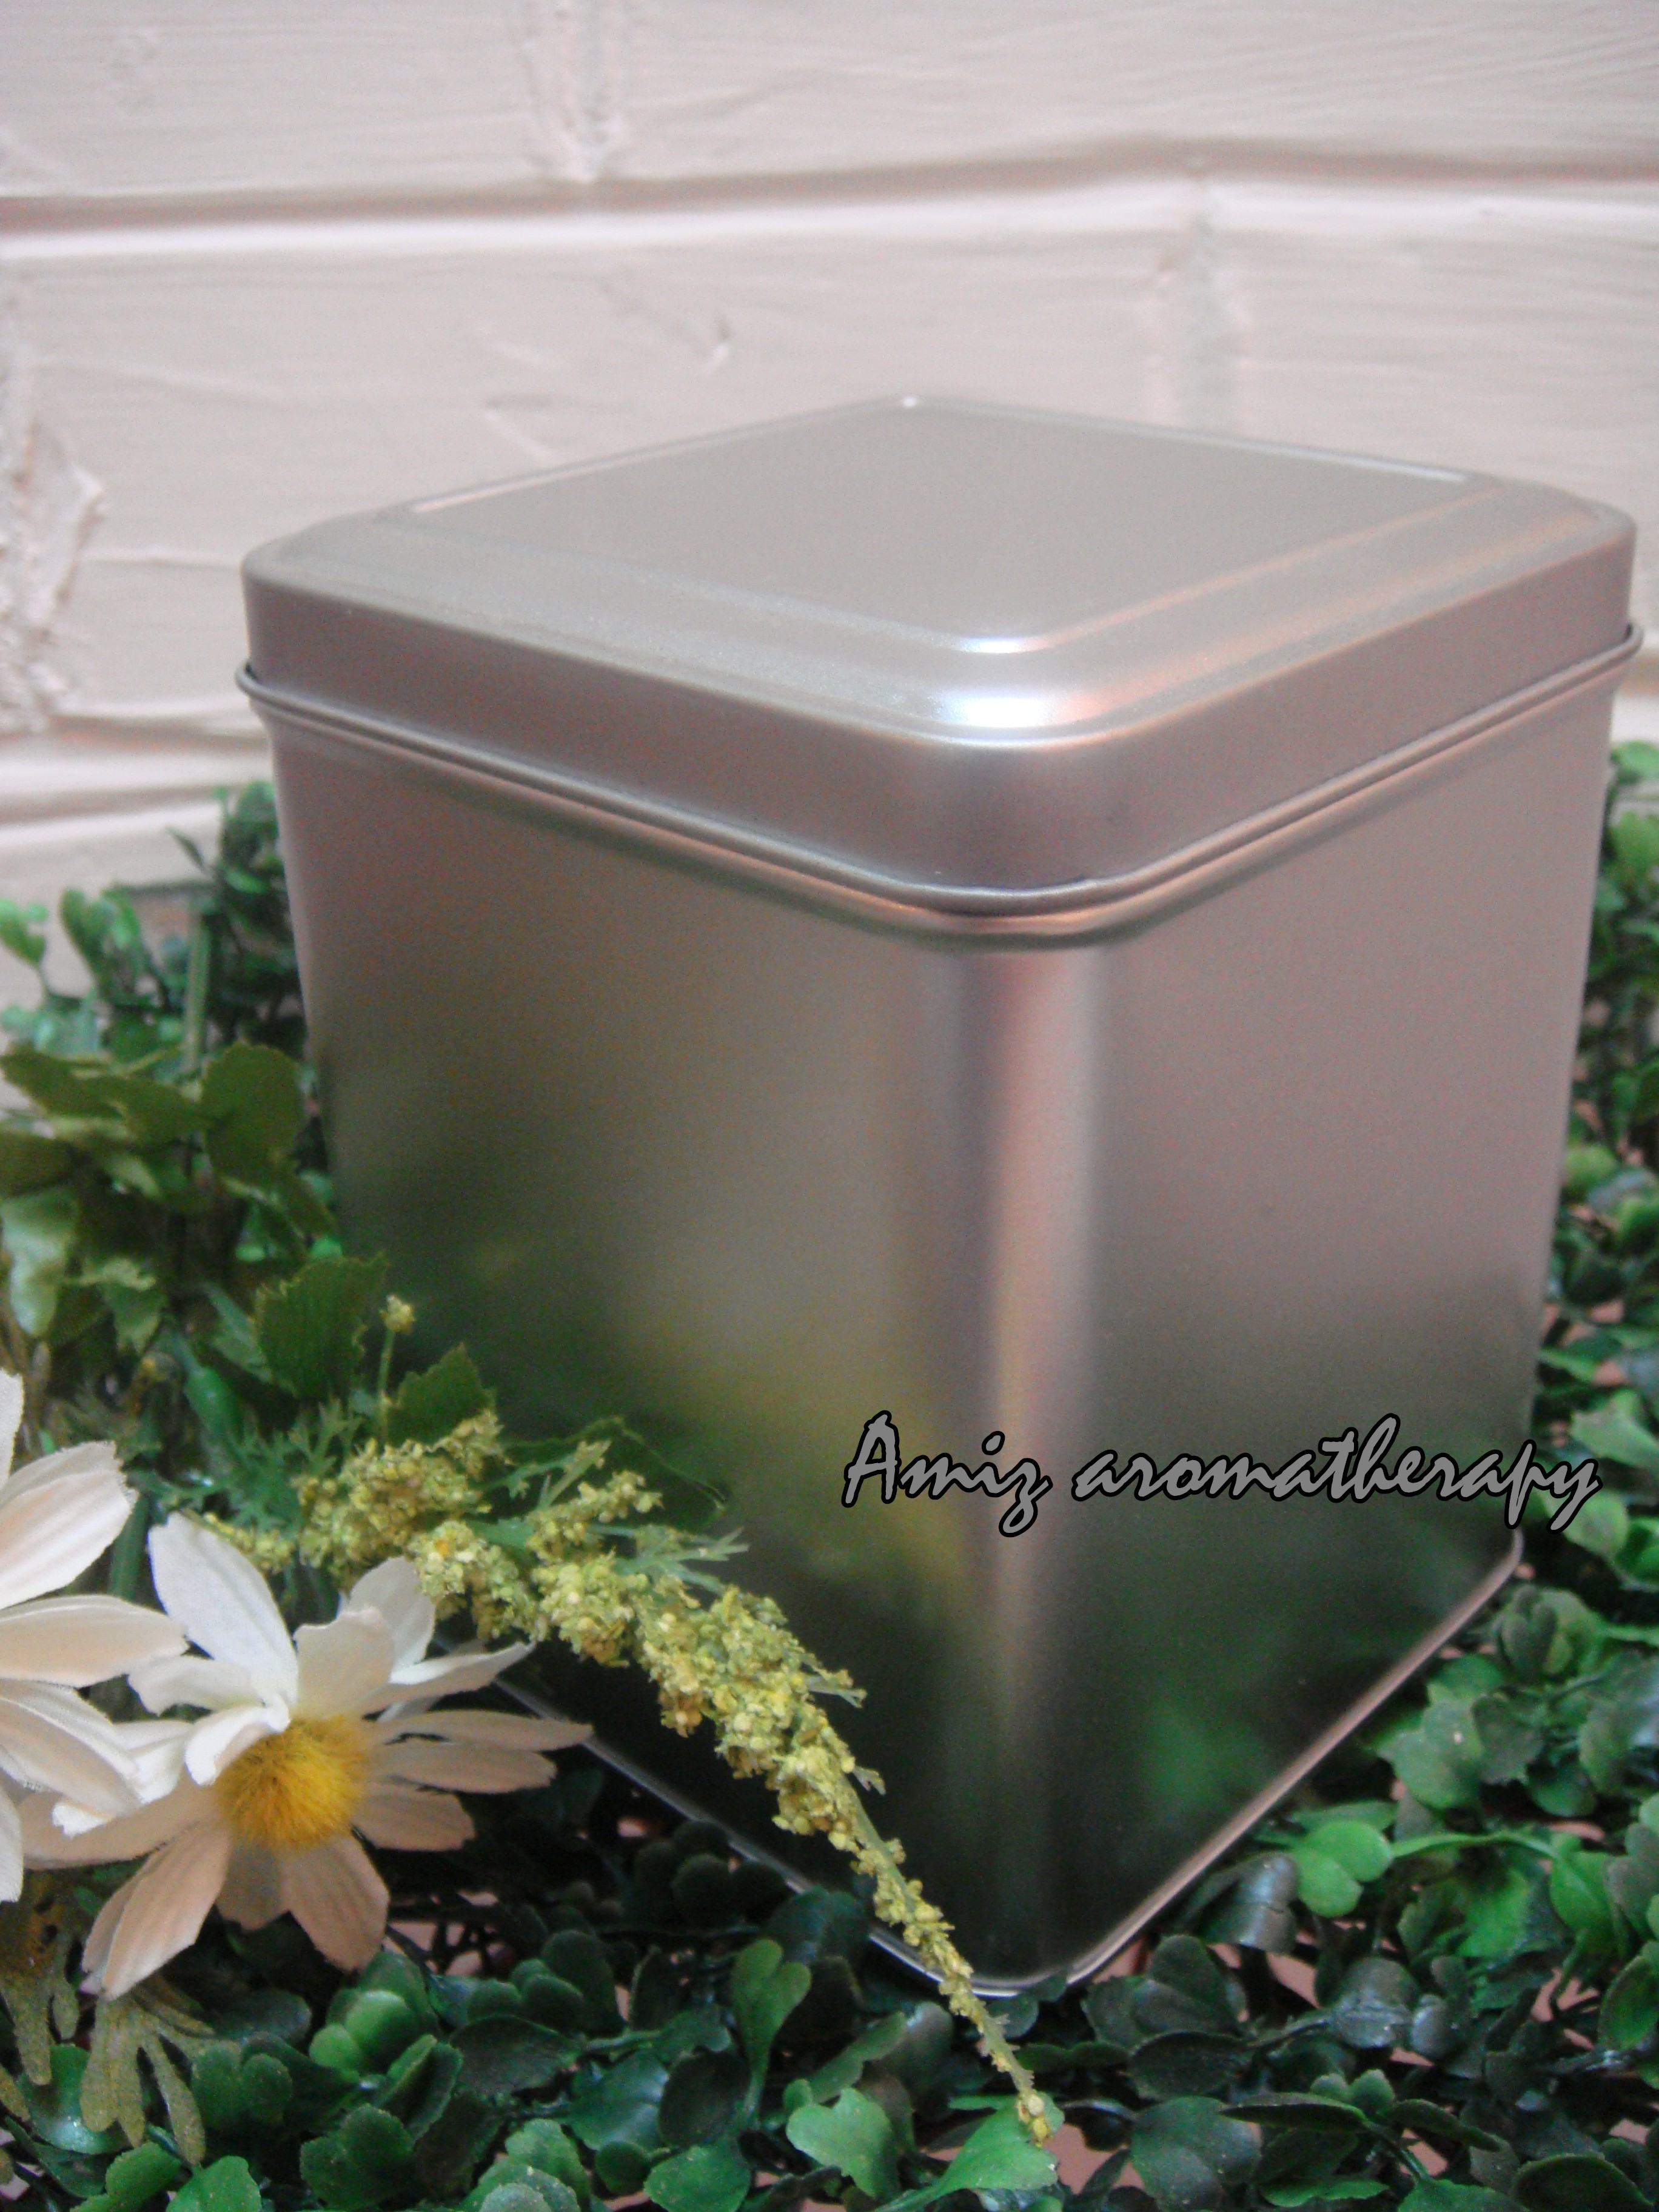 花茶銀色鐡罐(方型)|Metal silver tea tin in square-shaped